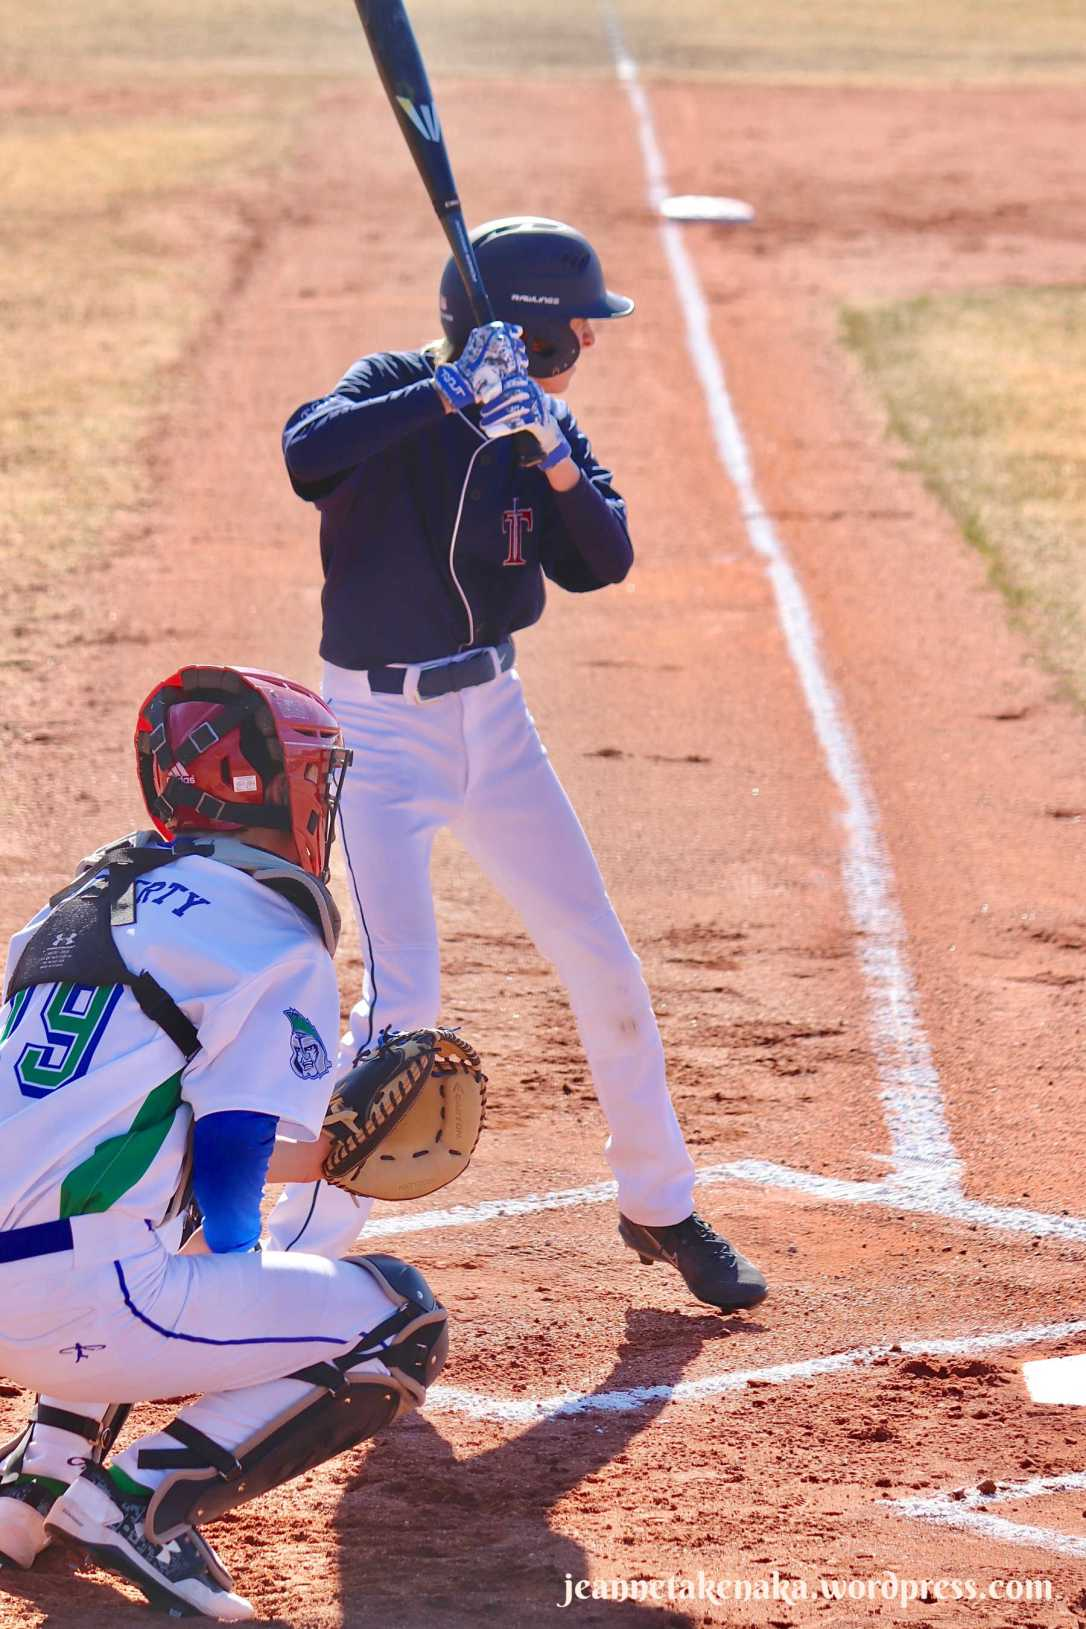 Perspective: Boy at home plate in batting position